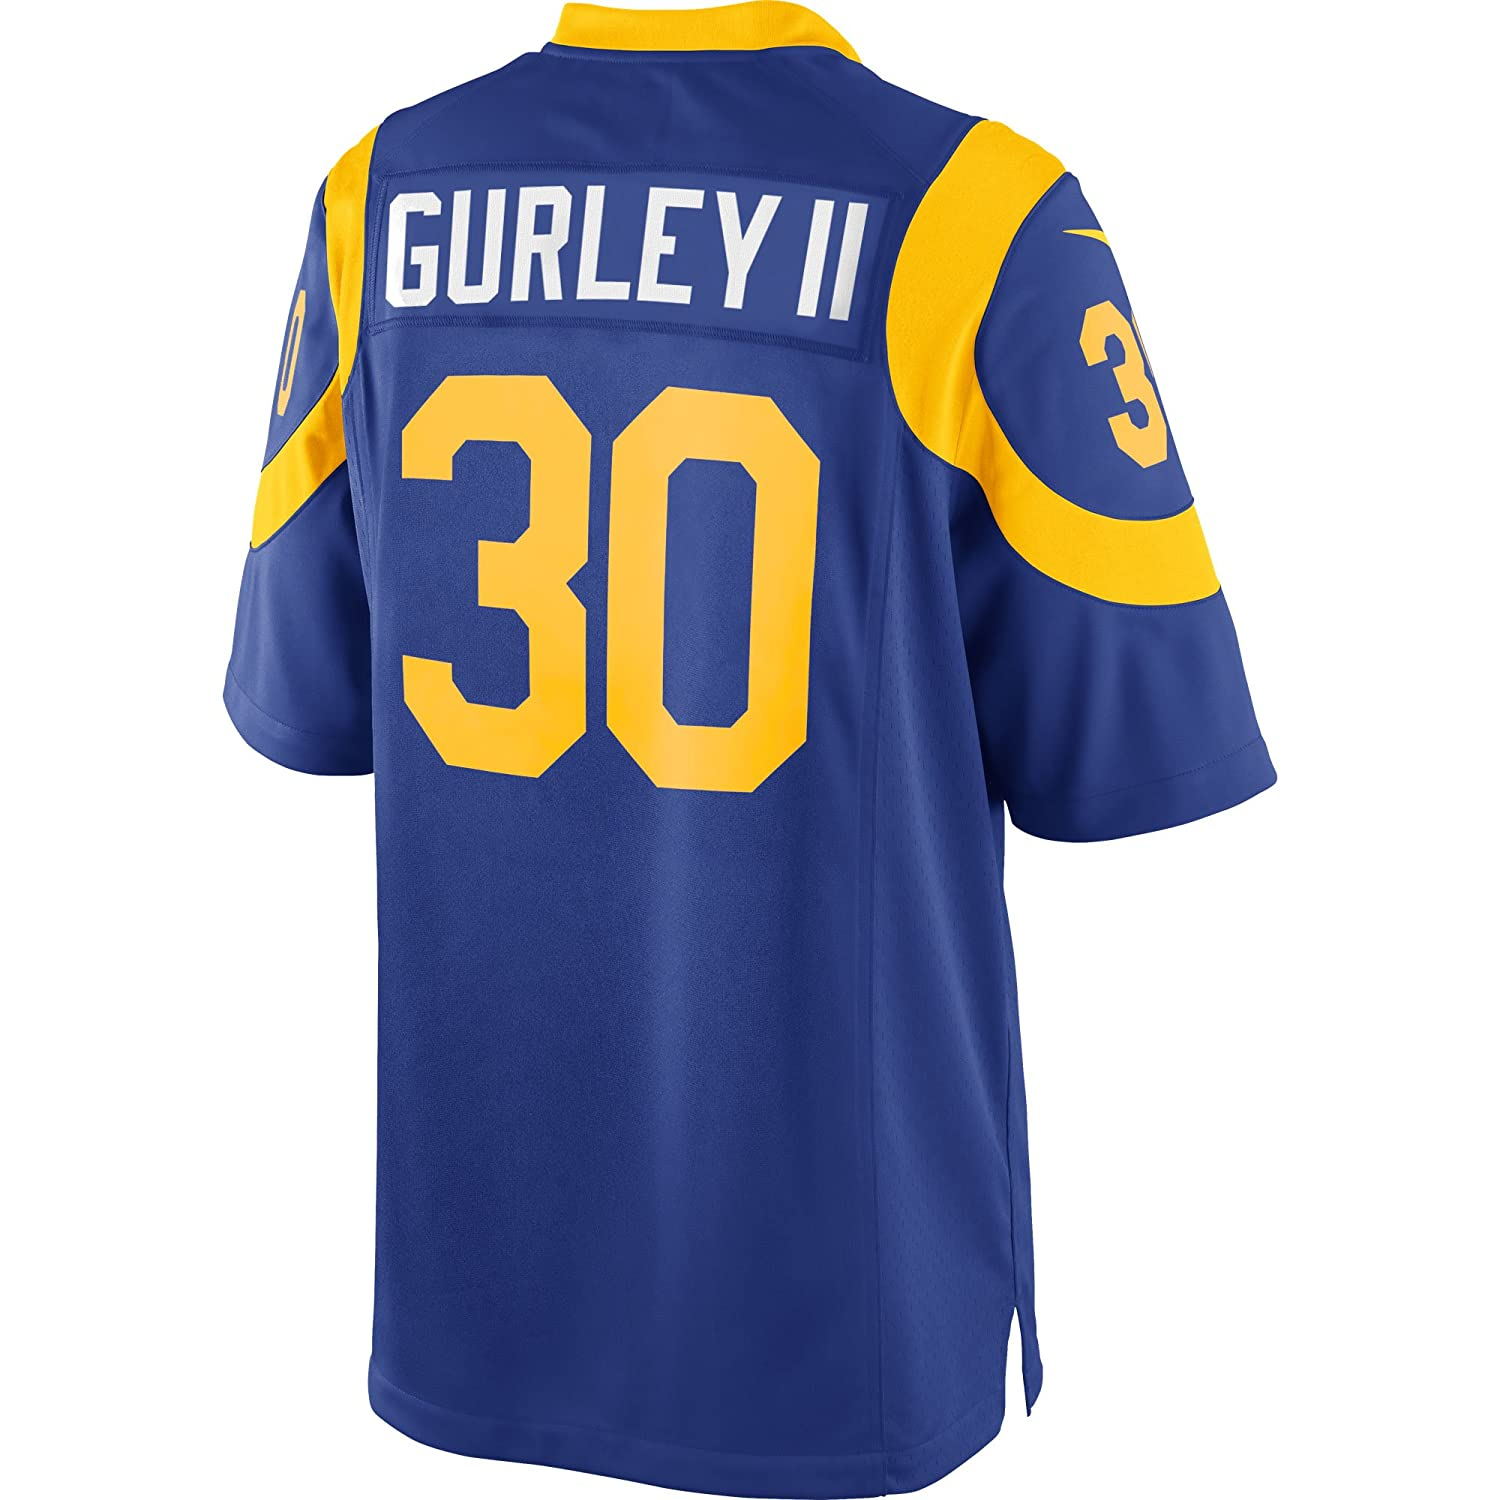 94d3f987 Amazon.com: Nike Youth Kids Medium (10-12) Todd Gurley II Los Angeles Rams  Throwback Alternate Game Jersey - Royal Blue: Clothing